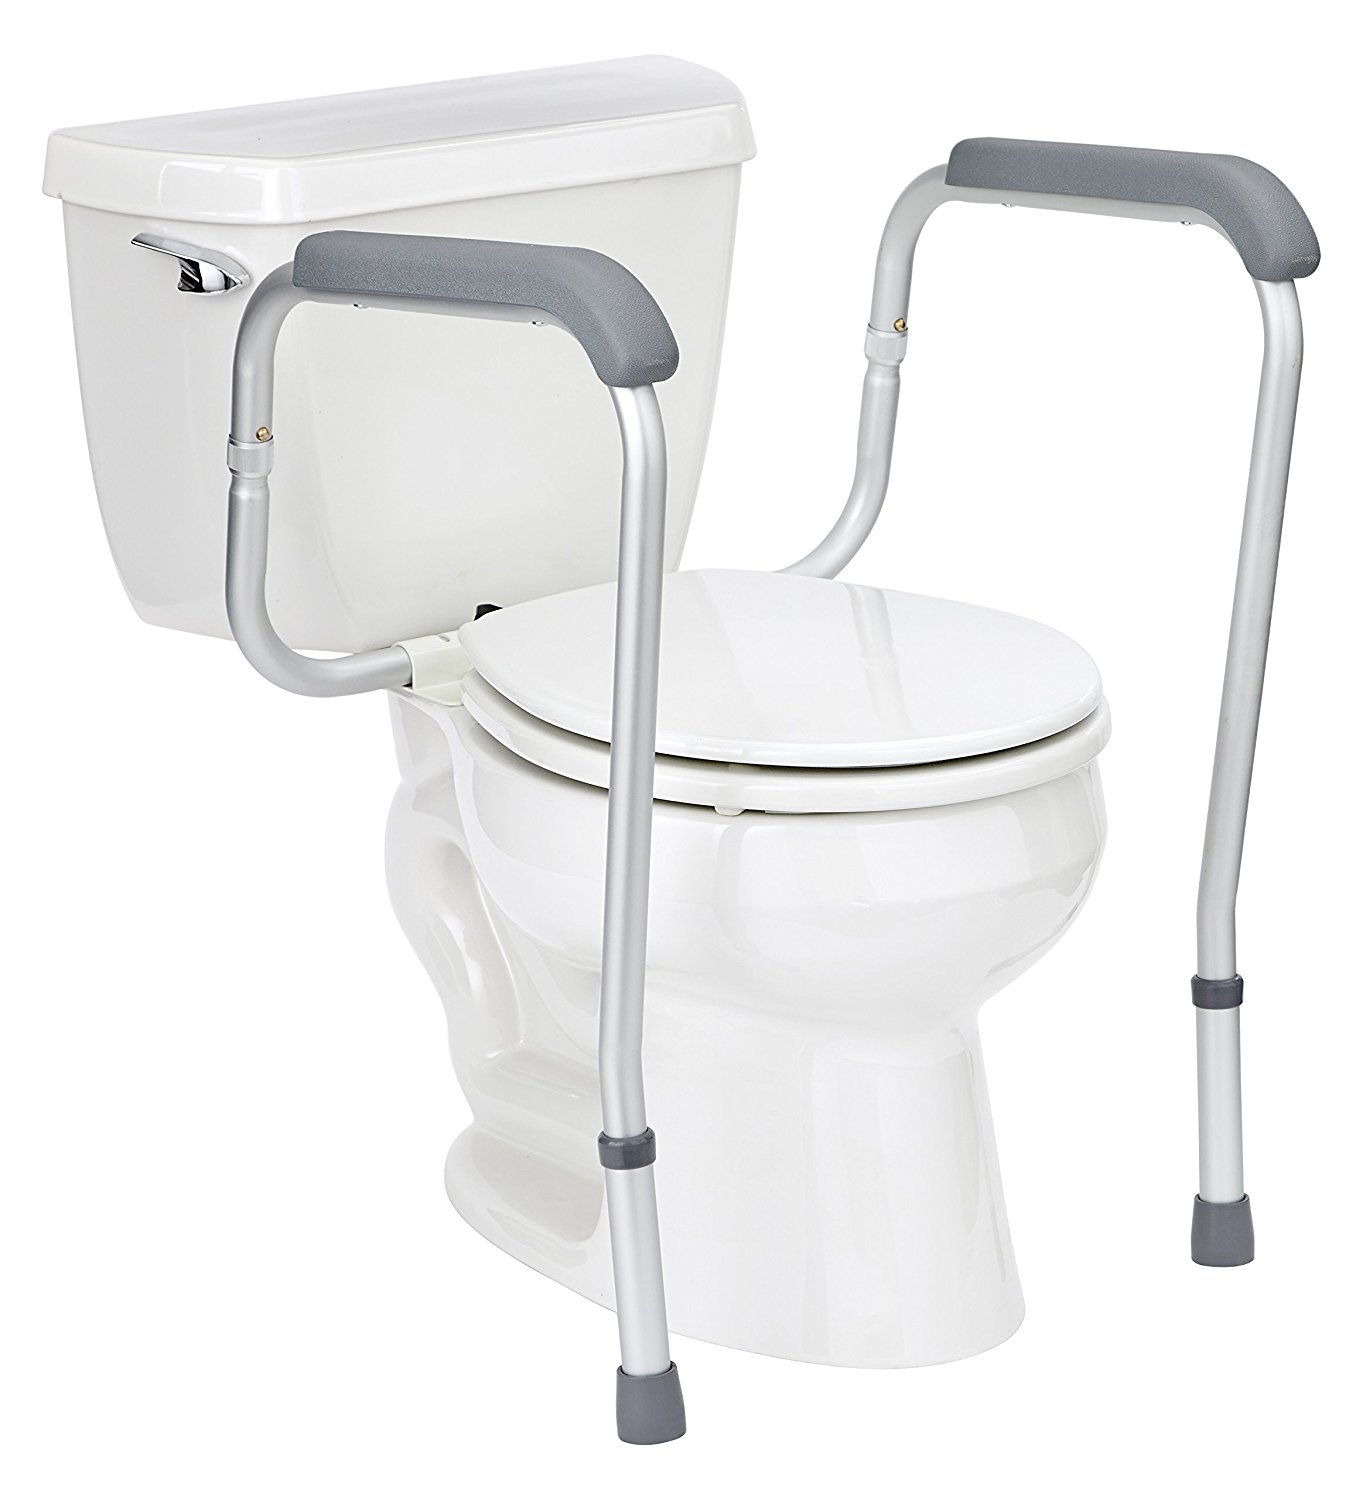 Medline Adjustable Toilet Safety Rails - Walmart.com on grab bars for bathroom, toilets for bathroom, mobility aids for bathroom, furniture for bathroom, hardware for bathroom, ladder for bathroom, shelving for bathroom, windows for bathroom, mirrors for bathroom, standing shelves for bathroom, safety rails home, wheelchairs for bathroom, doors for bathroom, commodes for bathroom, handrails for bathroom, signs for bathroom, lighting for bathroom, carts for bathroom, towel bars for bathroom, flooring for bathroom,